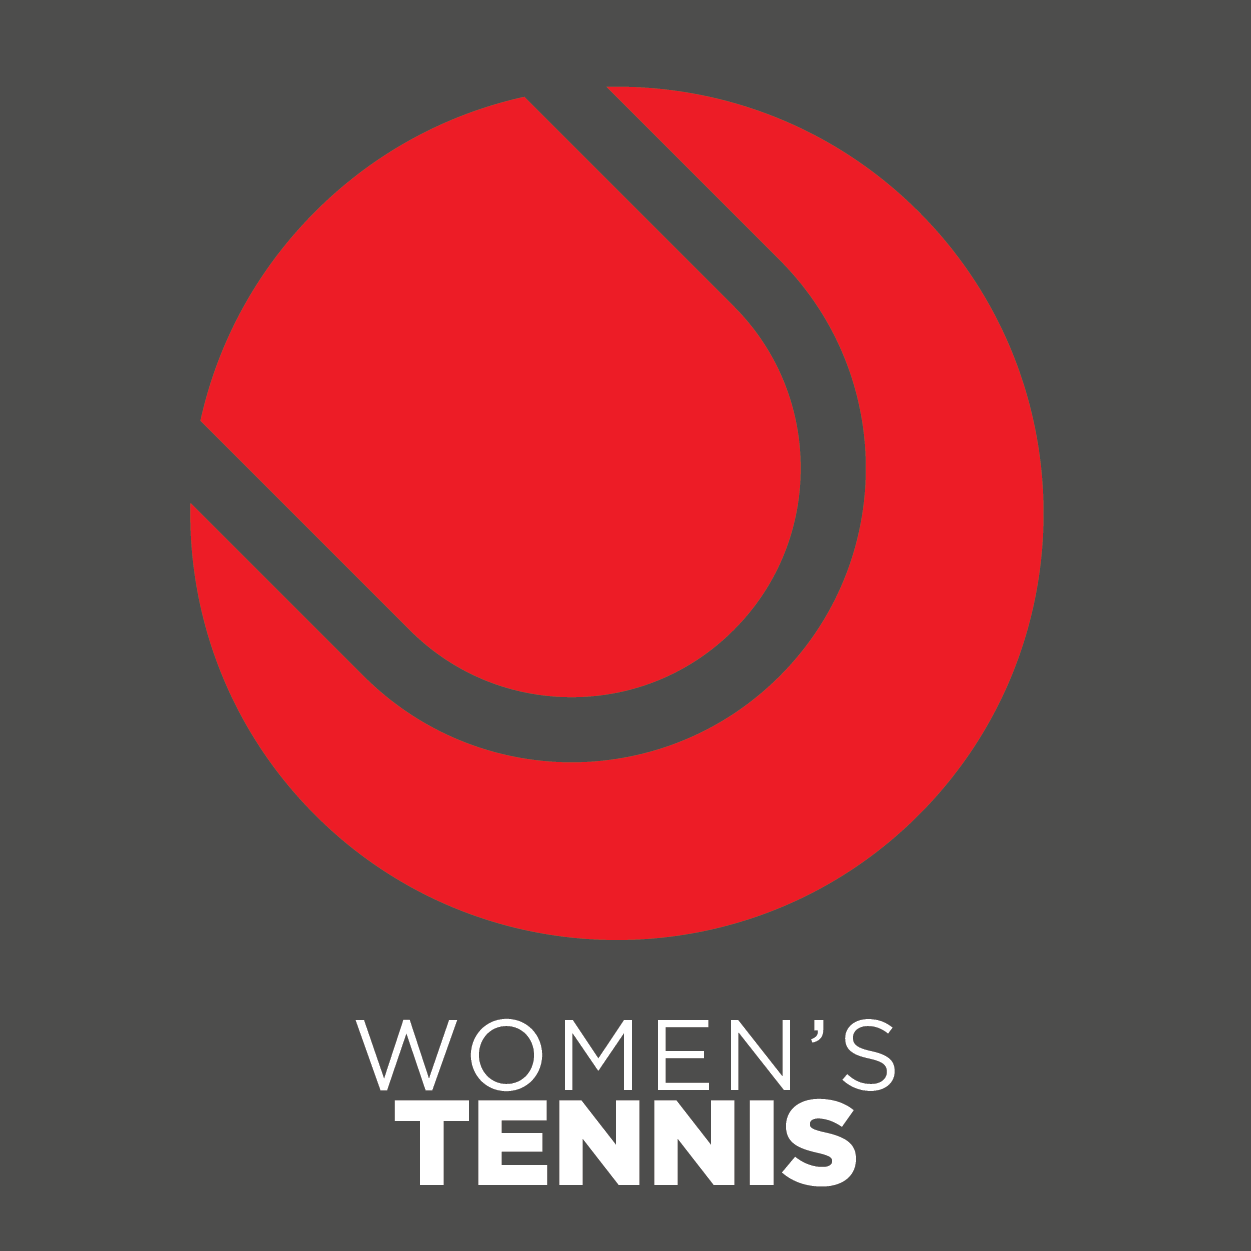 Web Buttons sports Central_Tennis W.png